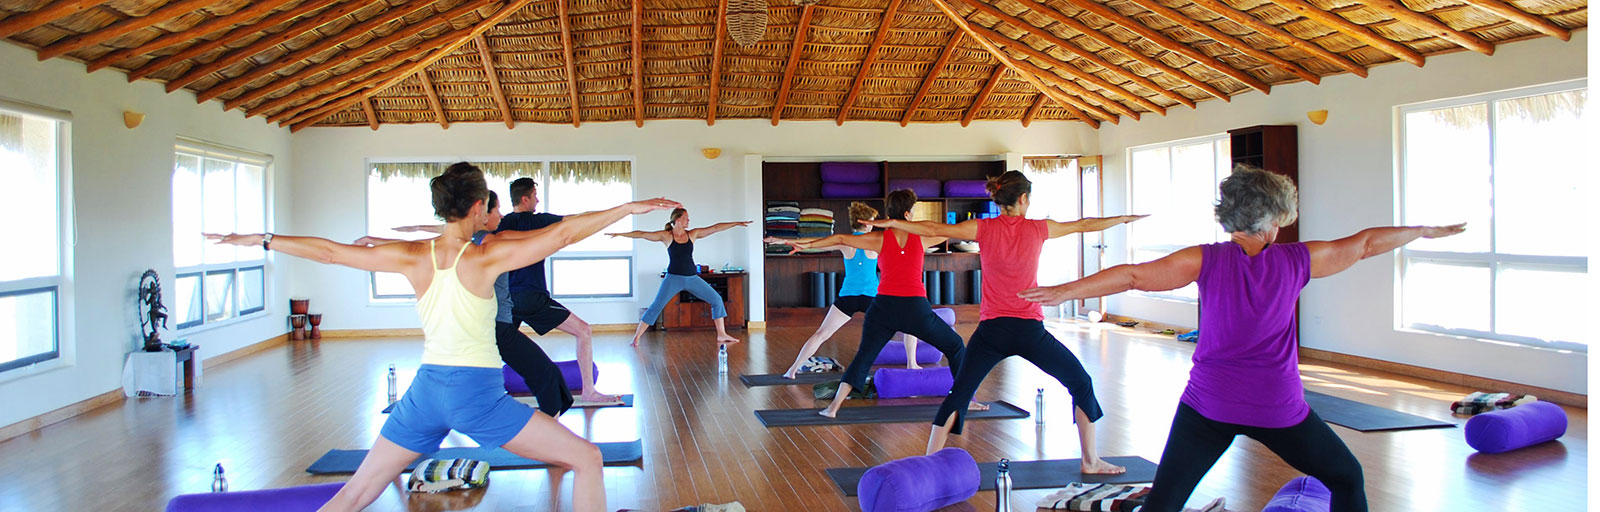 Best Yoga Retreats in Mexico: Yoga Class in one of our Yoga Studios